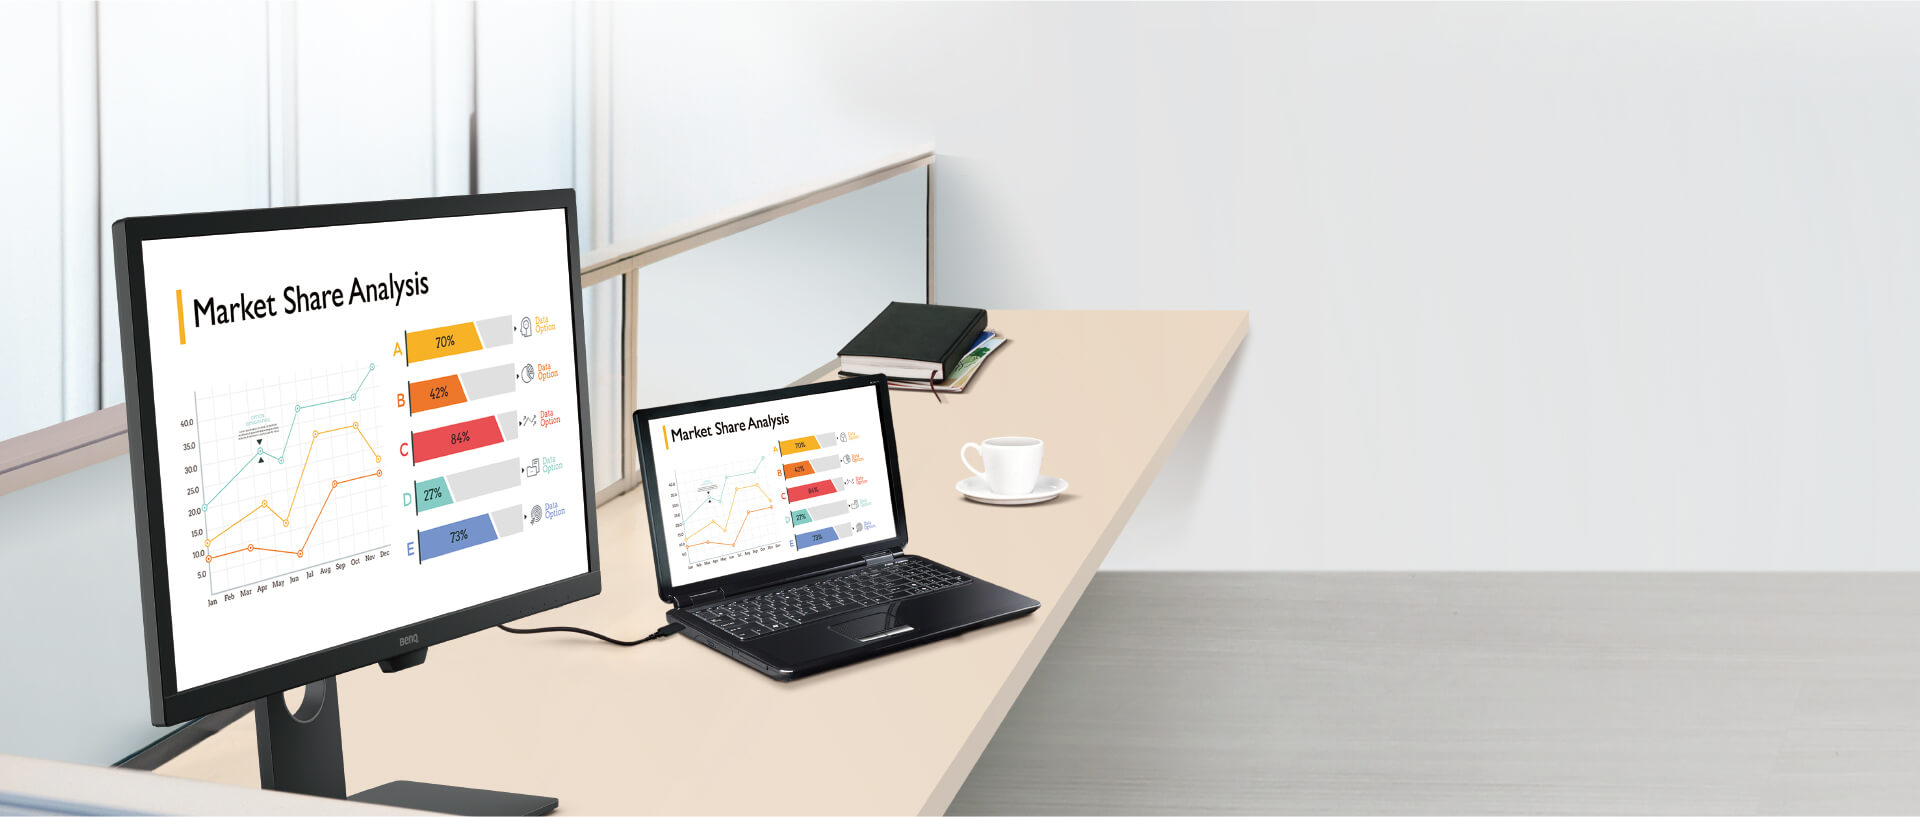 benq BL series business monitor enterprise-class image quality and ergonomic design to enhance productivity